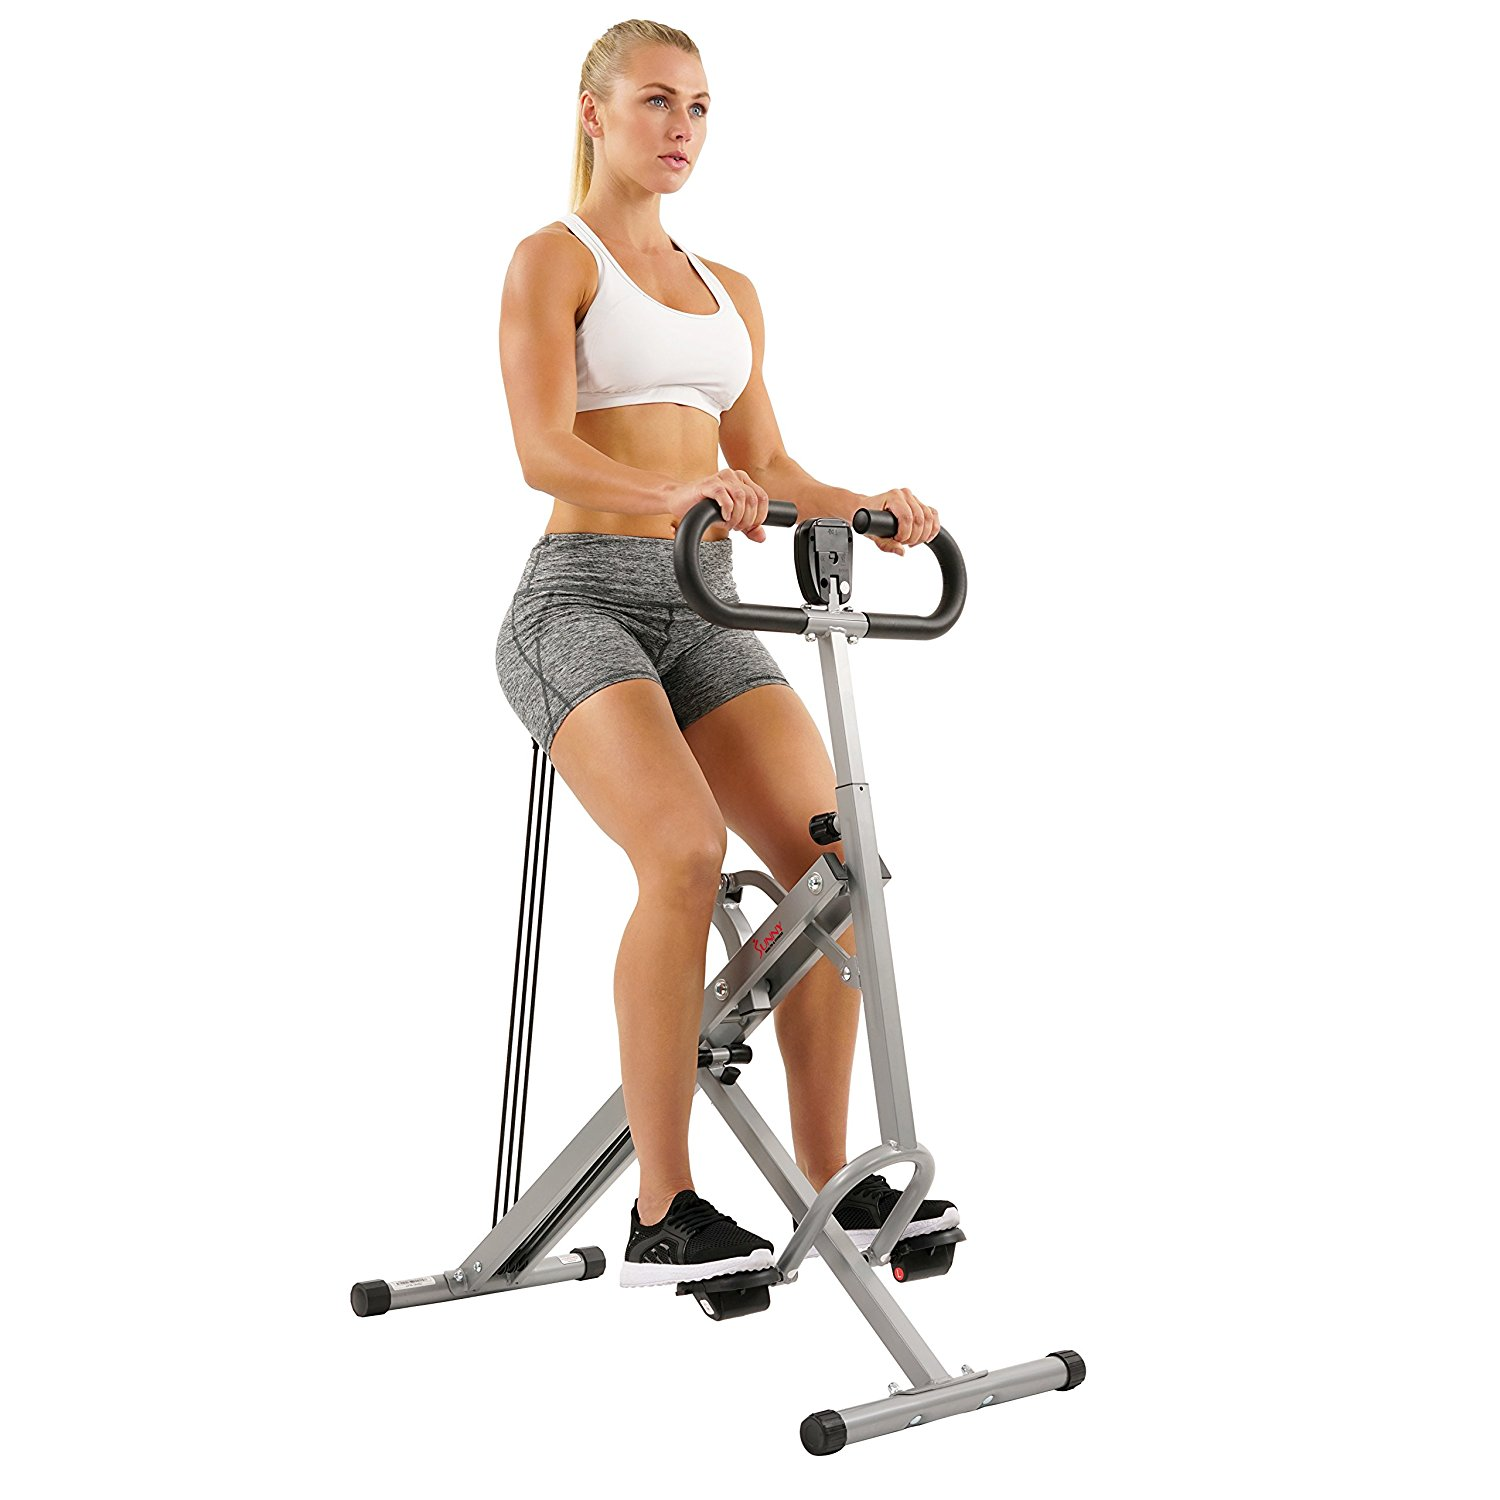 Sunny Health & Fitness Squat Machine Assist Row-N-Ride Trainer